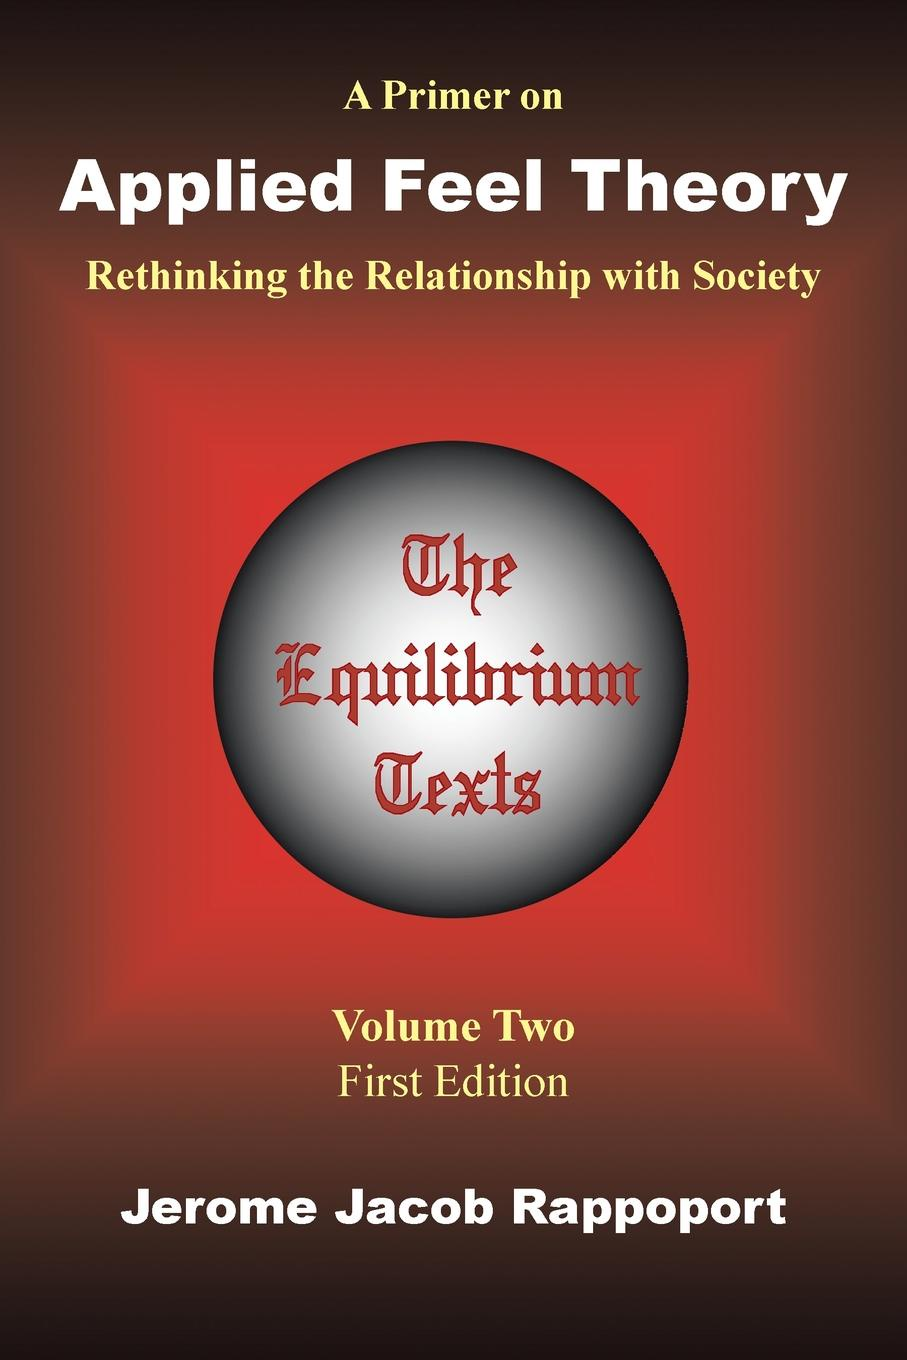 Jerome Jacob Rappoport A Primer on Applied Feel Theory. Rethinking the Relationship with Society (The Equilibrium Texts, Vol. 2) between self and others